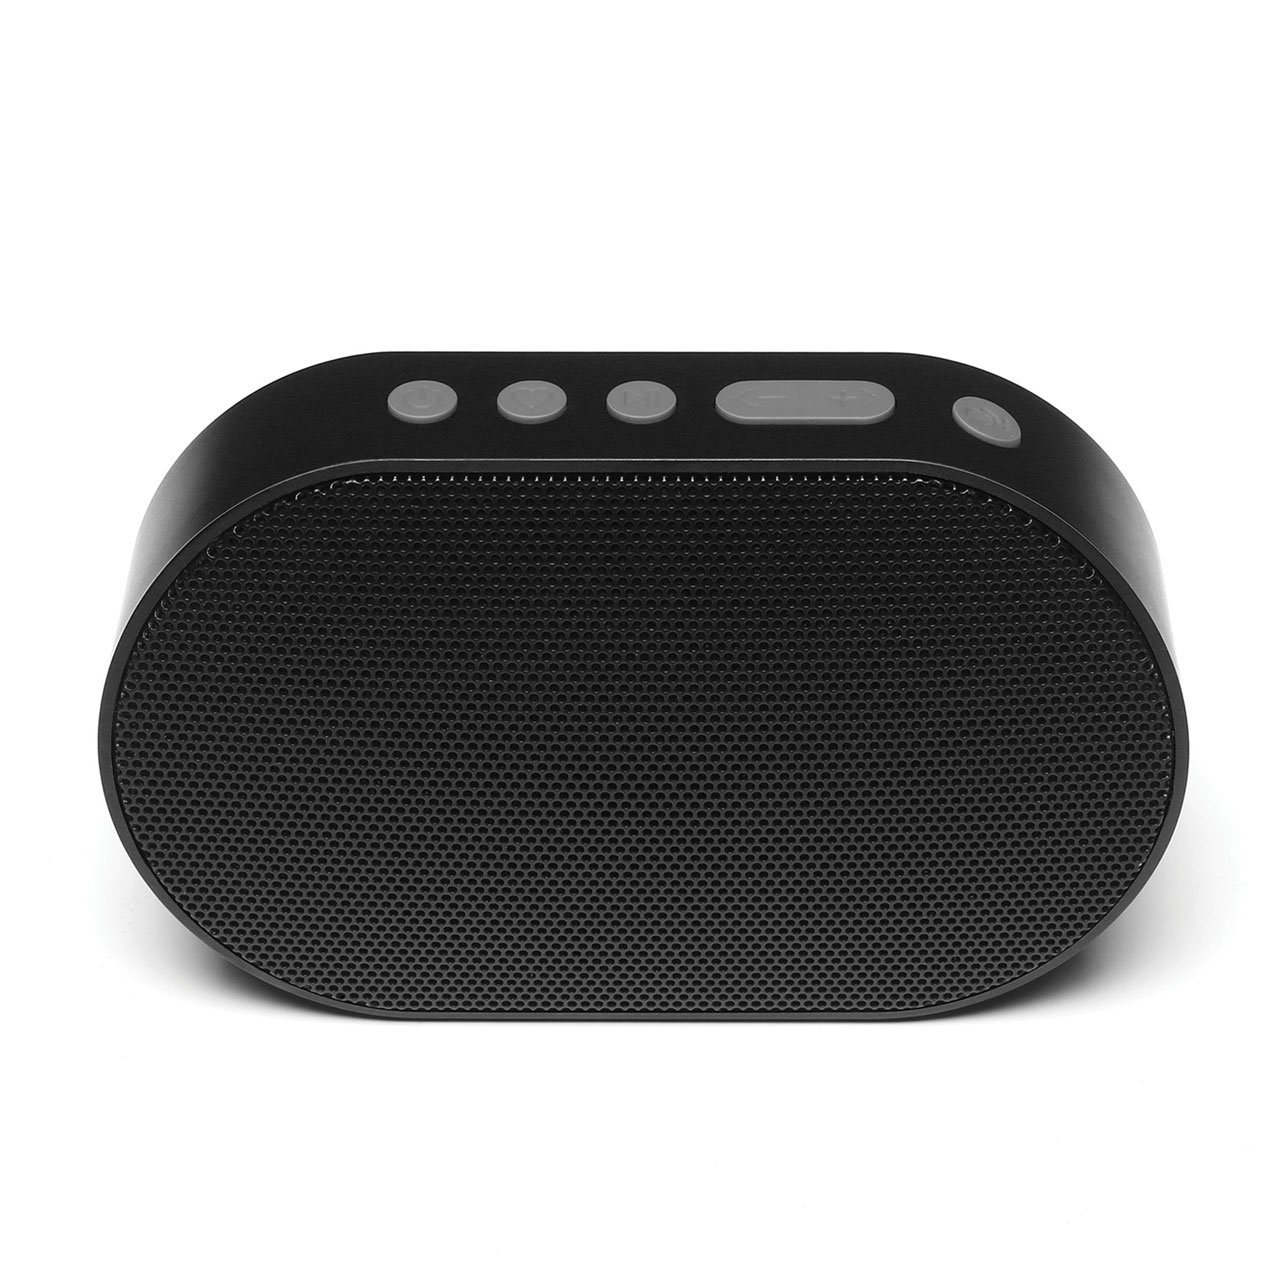 Buy Online GGMM E2 Portable WiFi Bluetooth Speaker and Apple Watch Series at Best Price